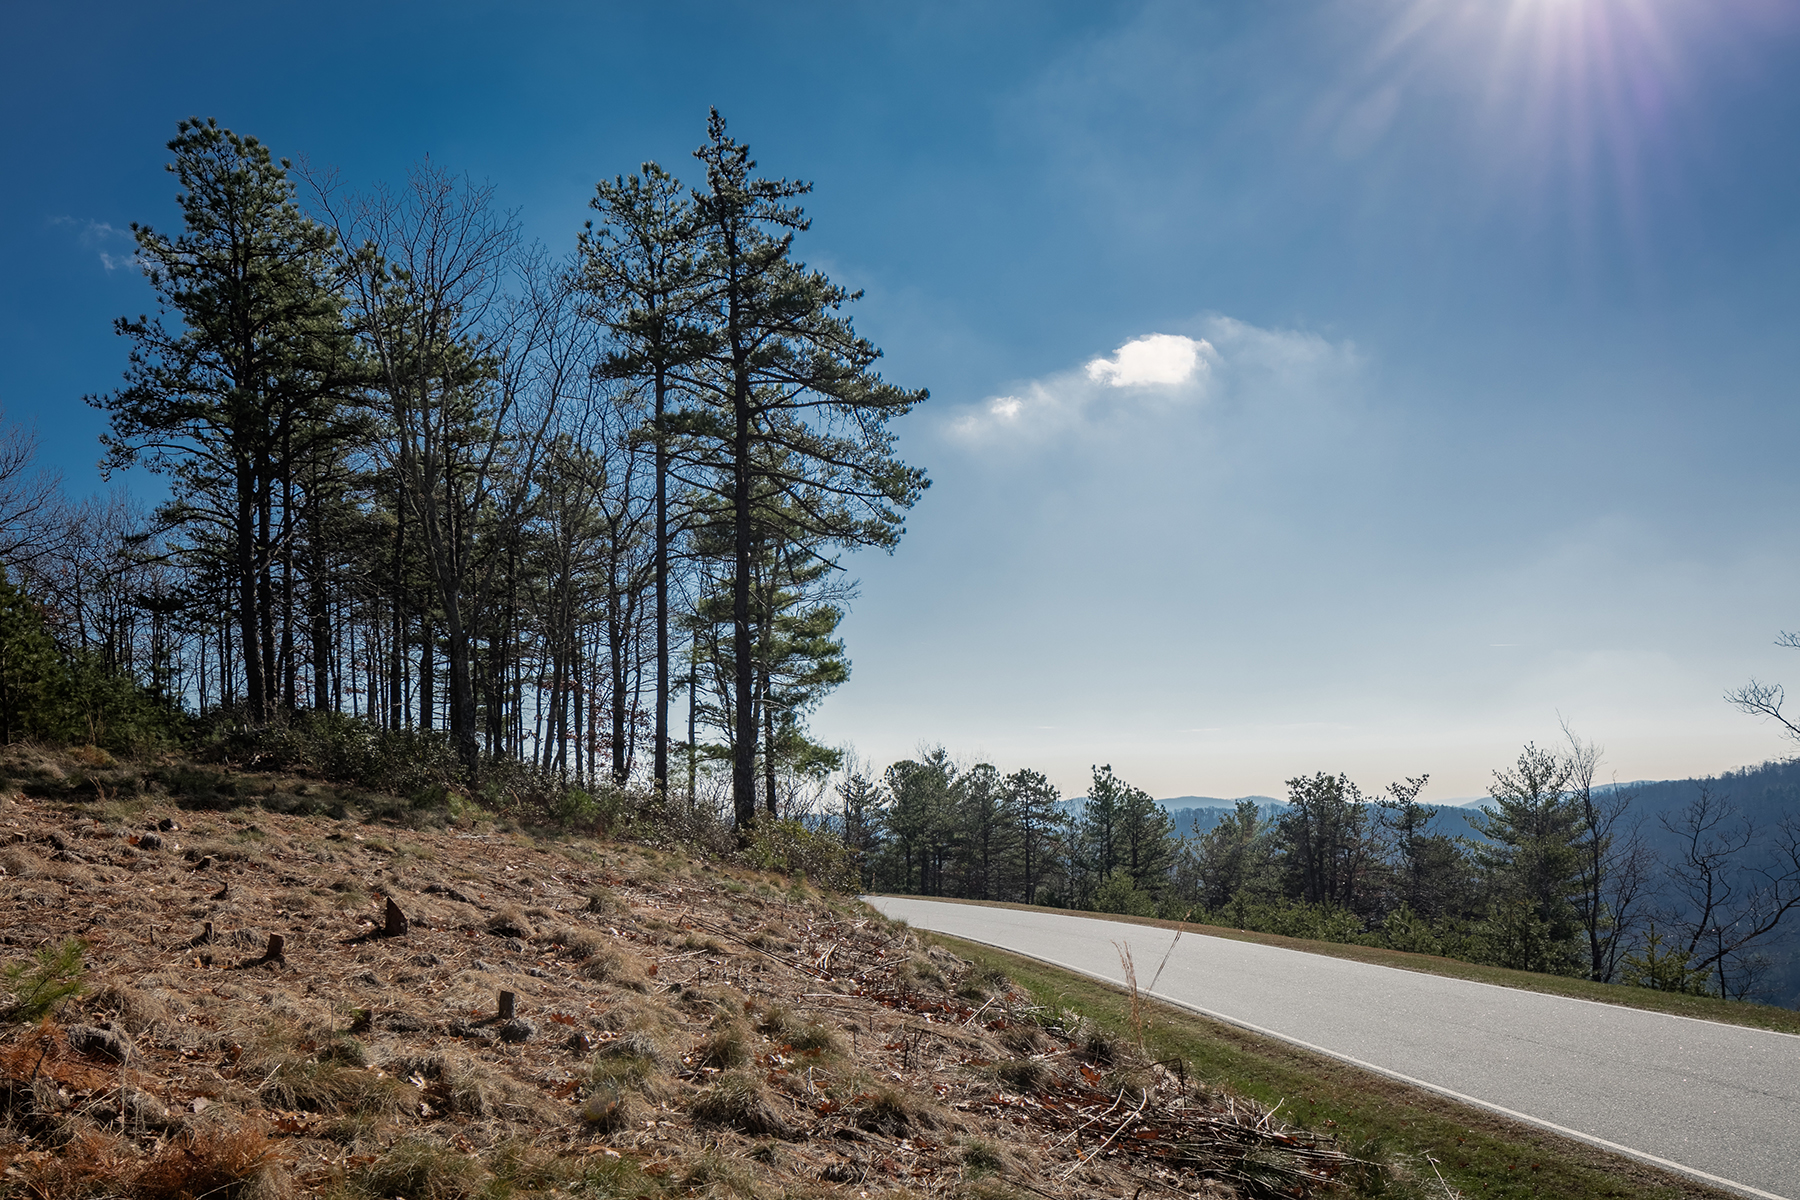 Land for Sale at Boone - Blue Ridge Mountain Club Lot 358 Reynolds Parkway Pkwy Boone, North Carolina, 28607 United States